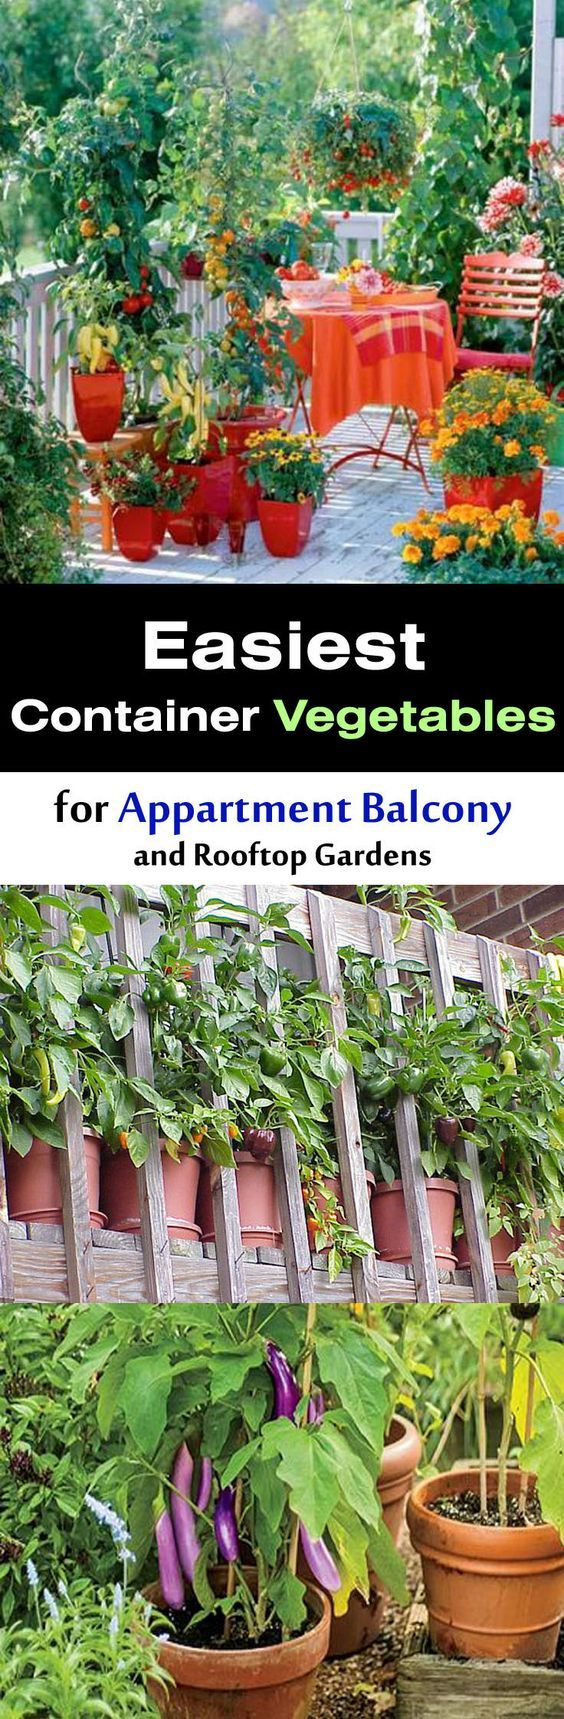 17 best ideas about indoor vegetable gardening on - Best vegetables for container gardening ...